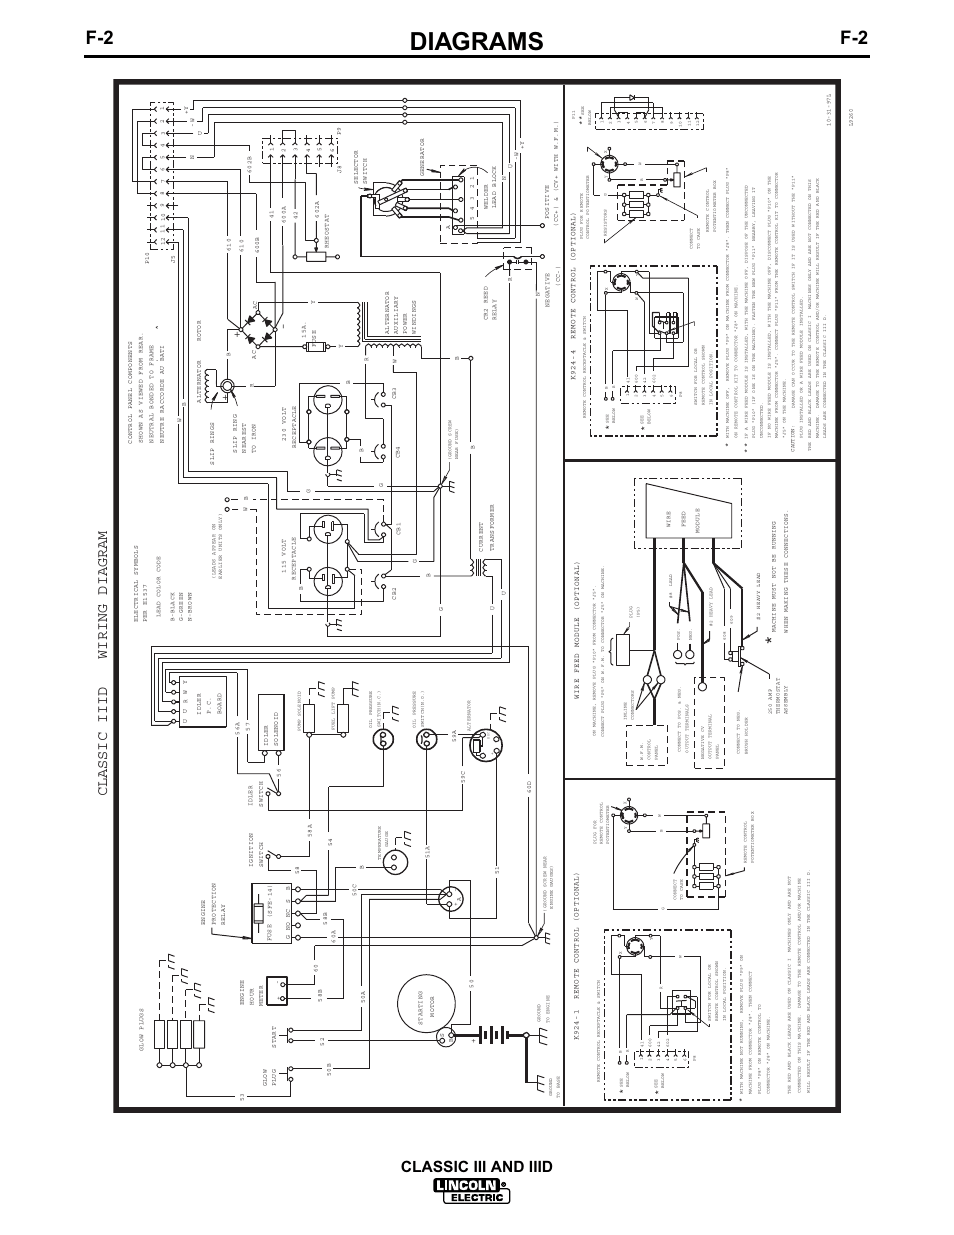 medium resolution of diagrams classic iii and iiid classic iiid wiring diagram lincoln electric im529 classic iii d user manual page 27 34